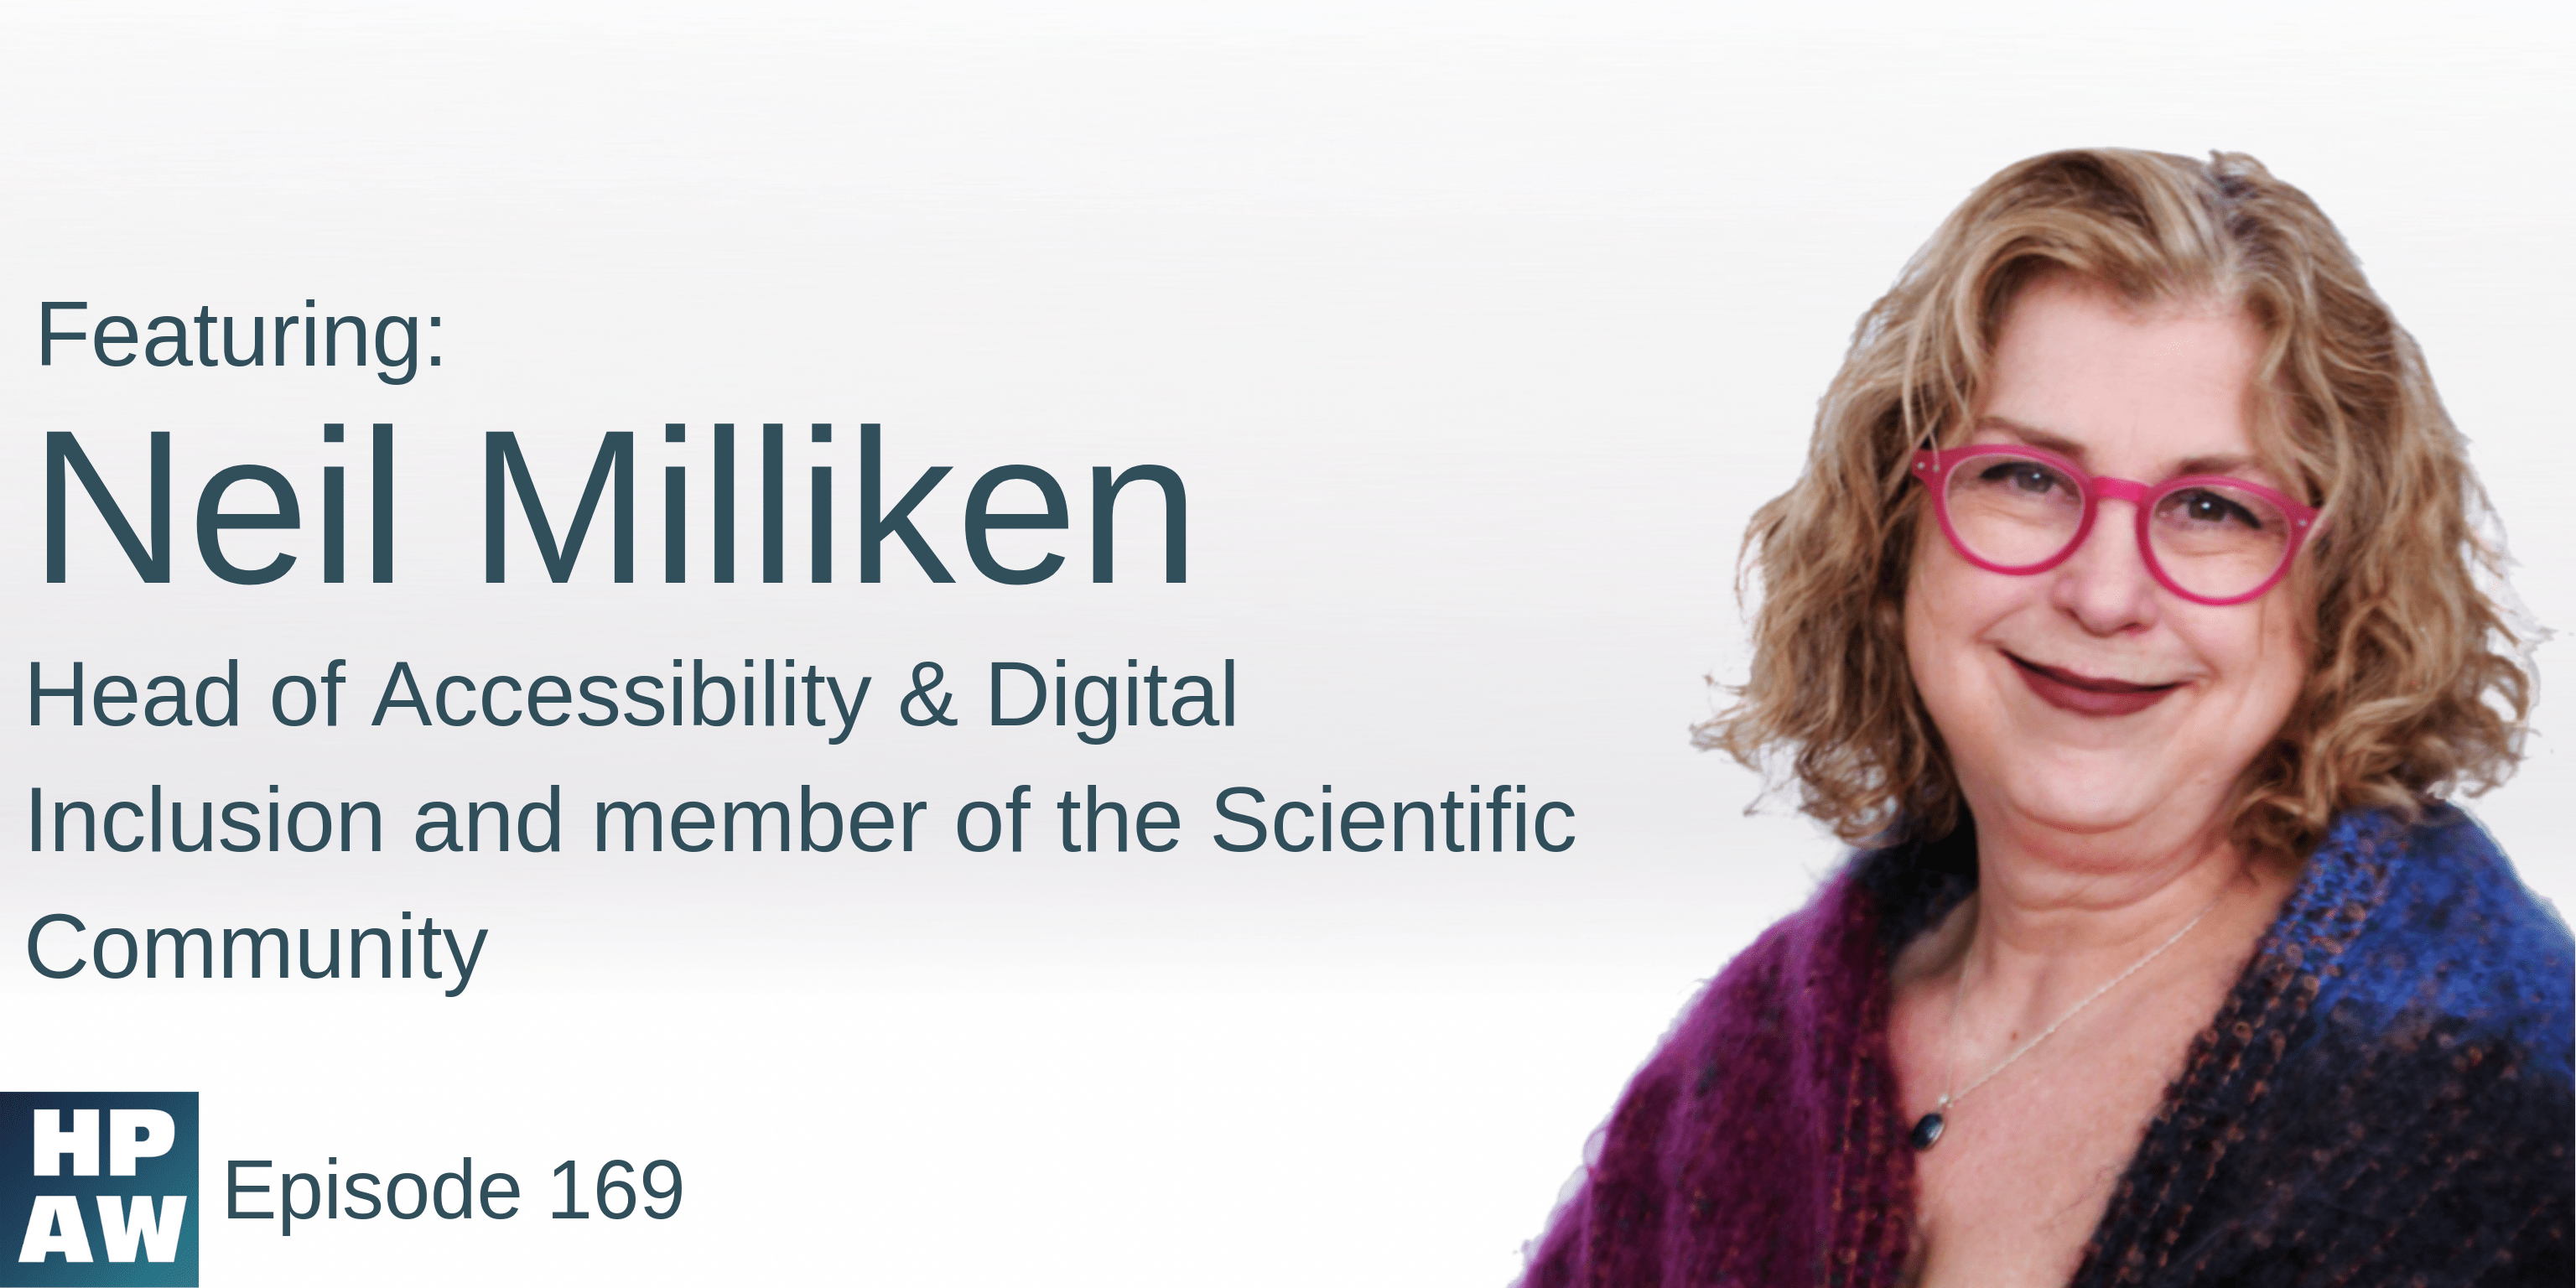 HPAW Episode 169, with Neil Milliken, Head of Accessibility & Digital Inclusion and member of the Scientific Community